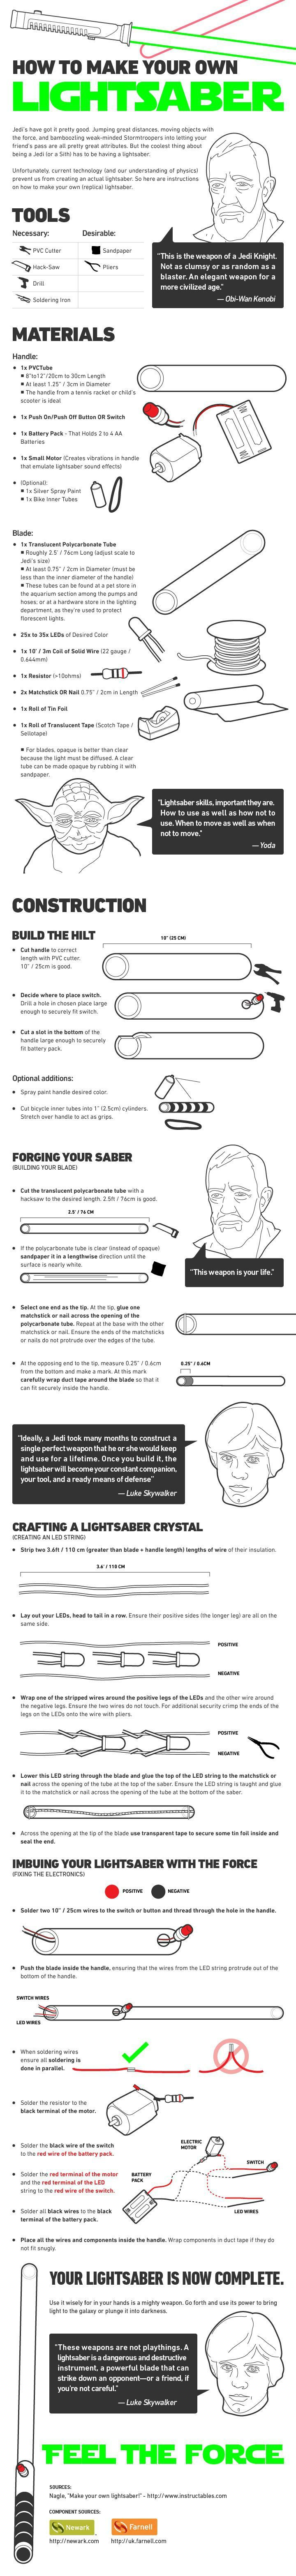 Star Wars : comment fabriquer sa propre réplique de sabre laser ? - Geeks and Com'